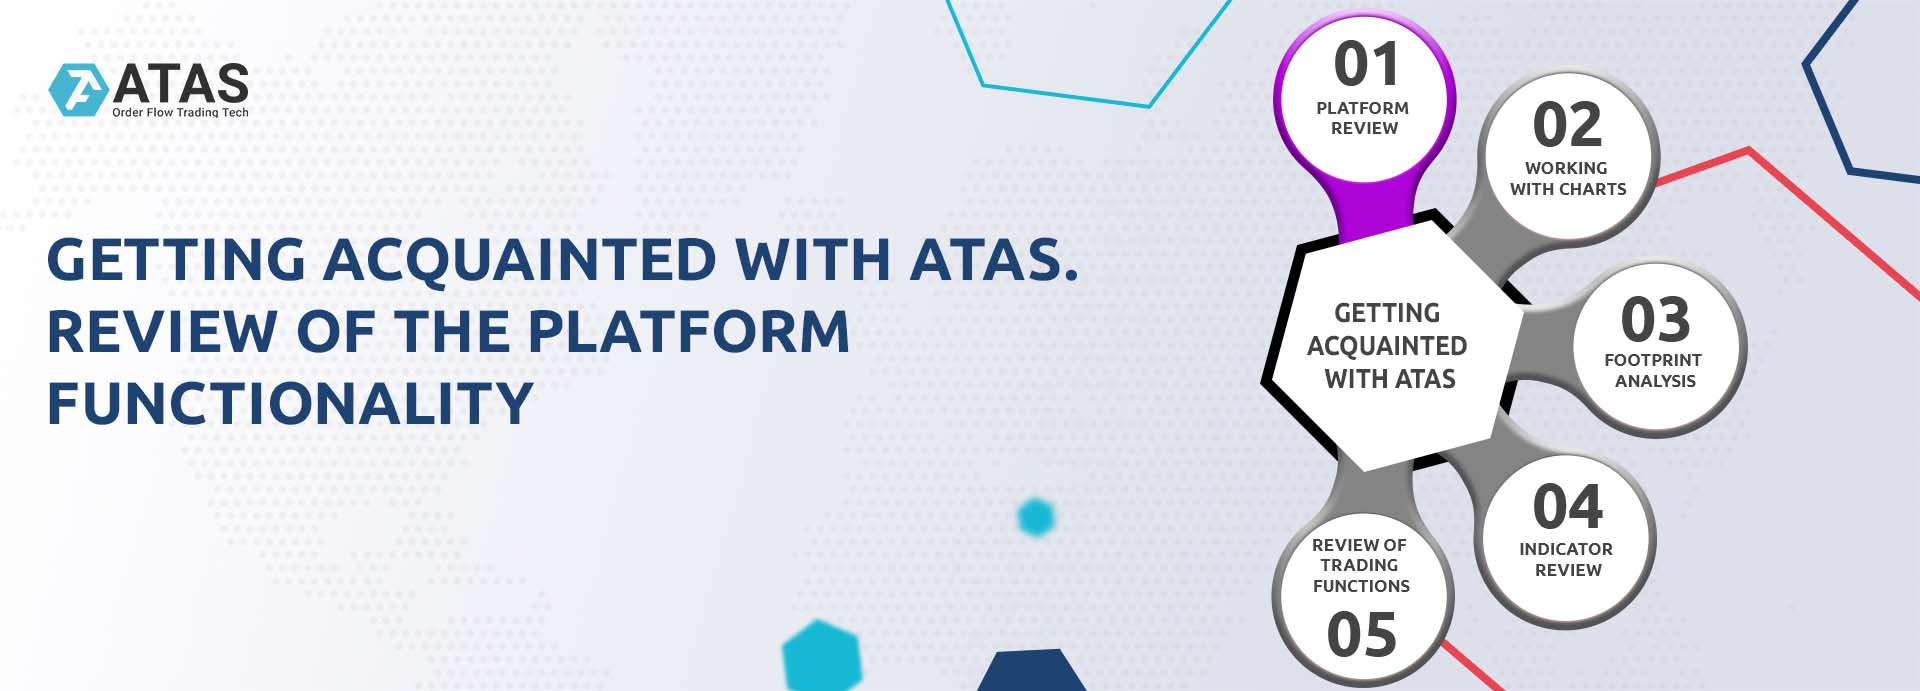 Getting acquainted with ATAS. Review of the platform functionality